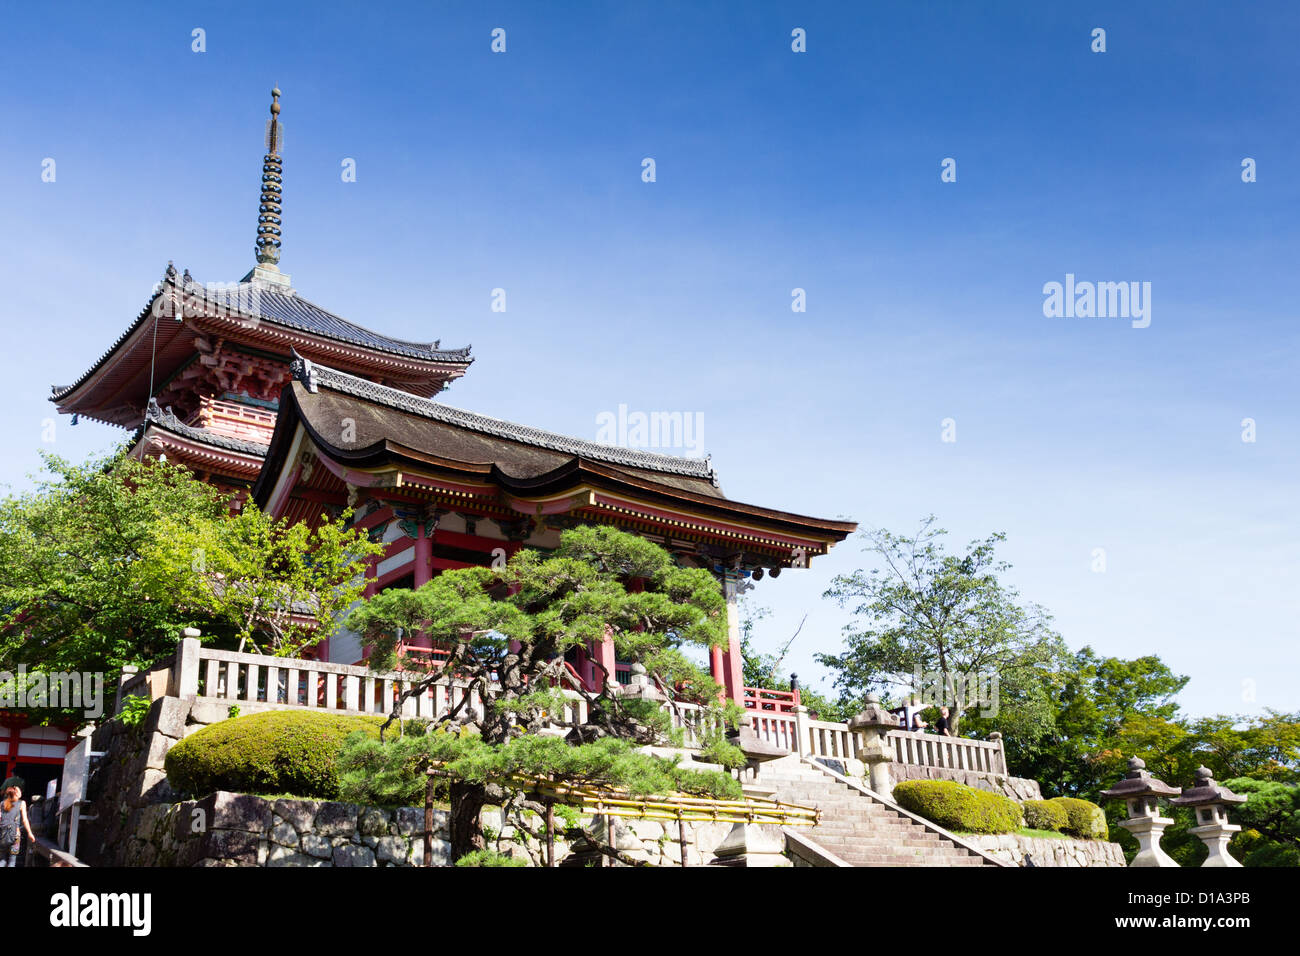 KYOTO, JAPON L'architecture traditionnelle, le temple Kiyomizu-dera. Photo Stock